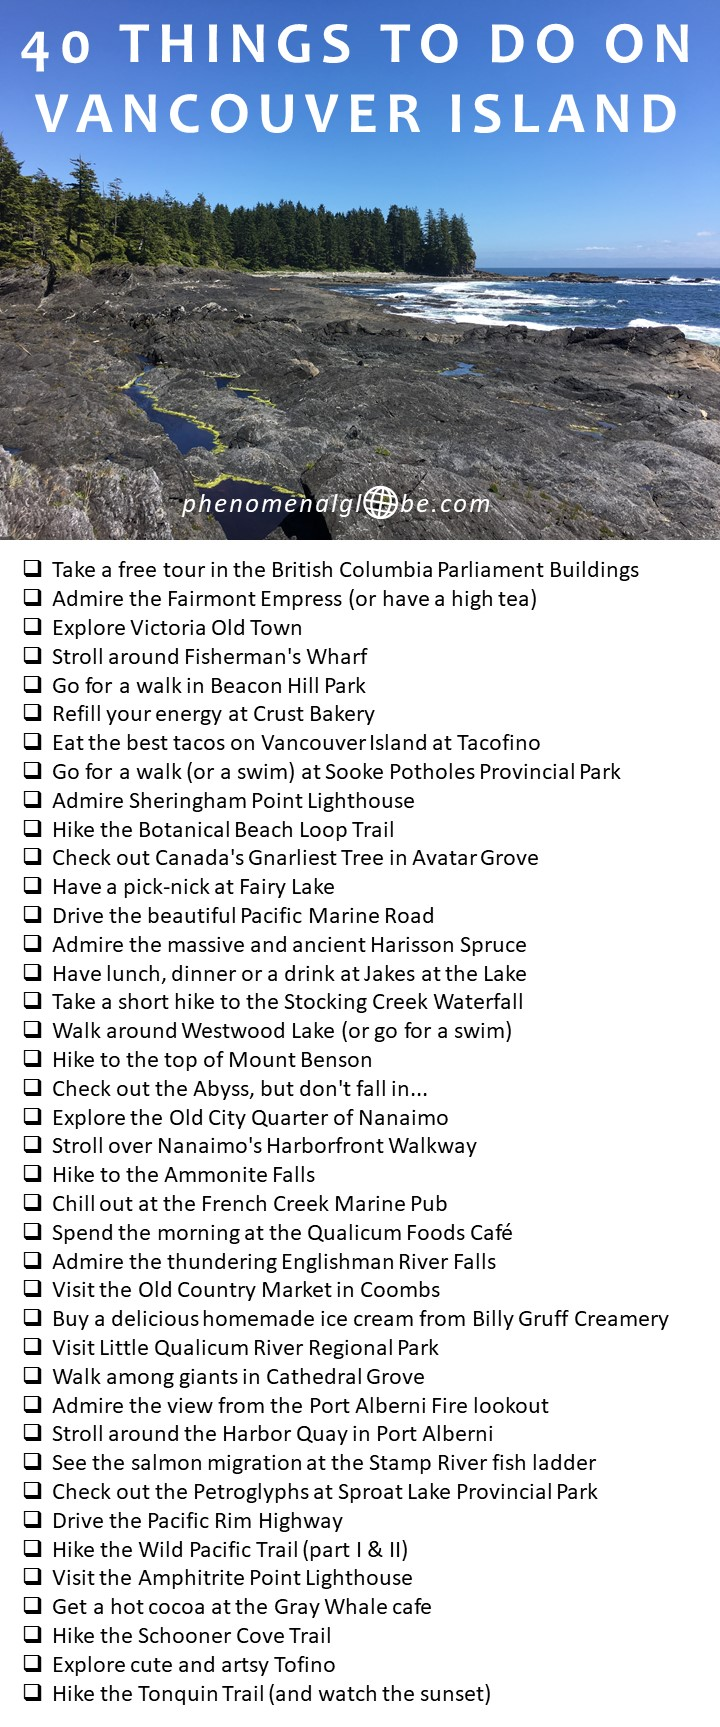 Check out these 40 amazing things to do on Vancouver Island! #VancouverIsland #Canada